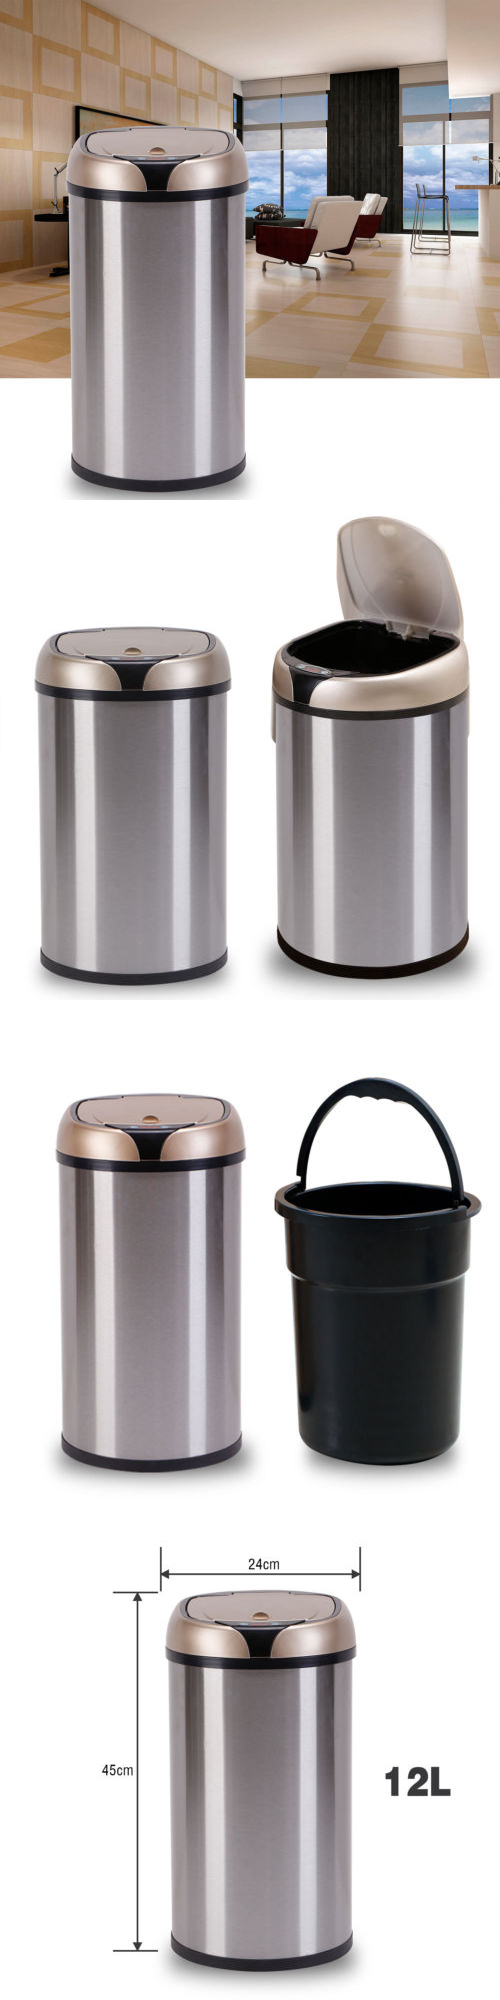 Trash Cans And Wastebaskets Inspiration Trash Cans And Wastebaskets 20608 12L Automatic Sensor Trash Can Decorating Inspiration